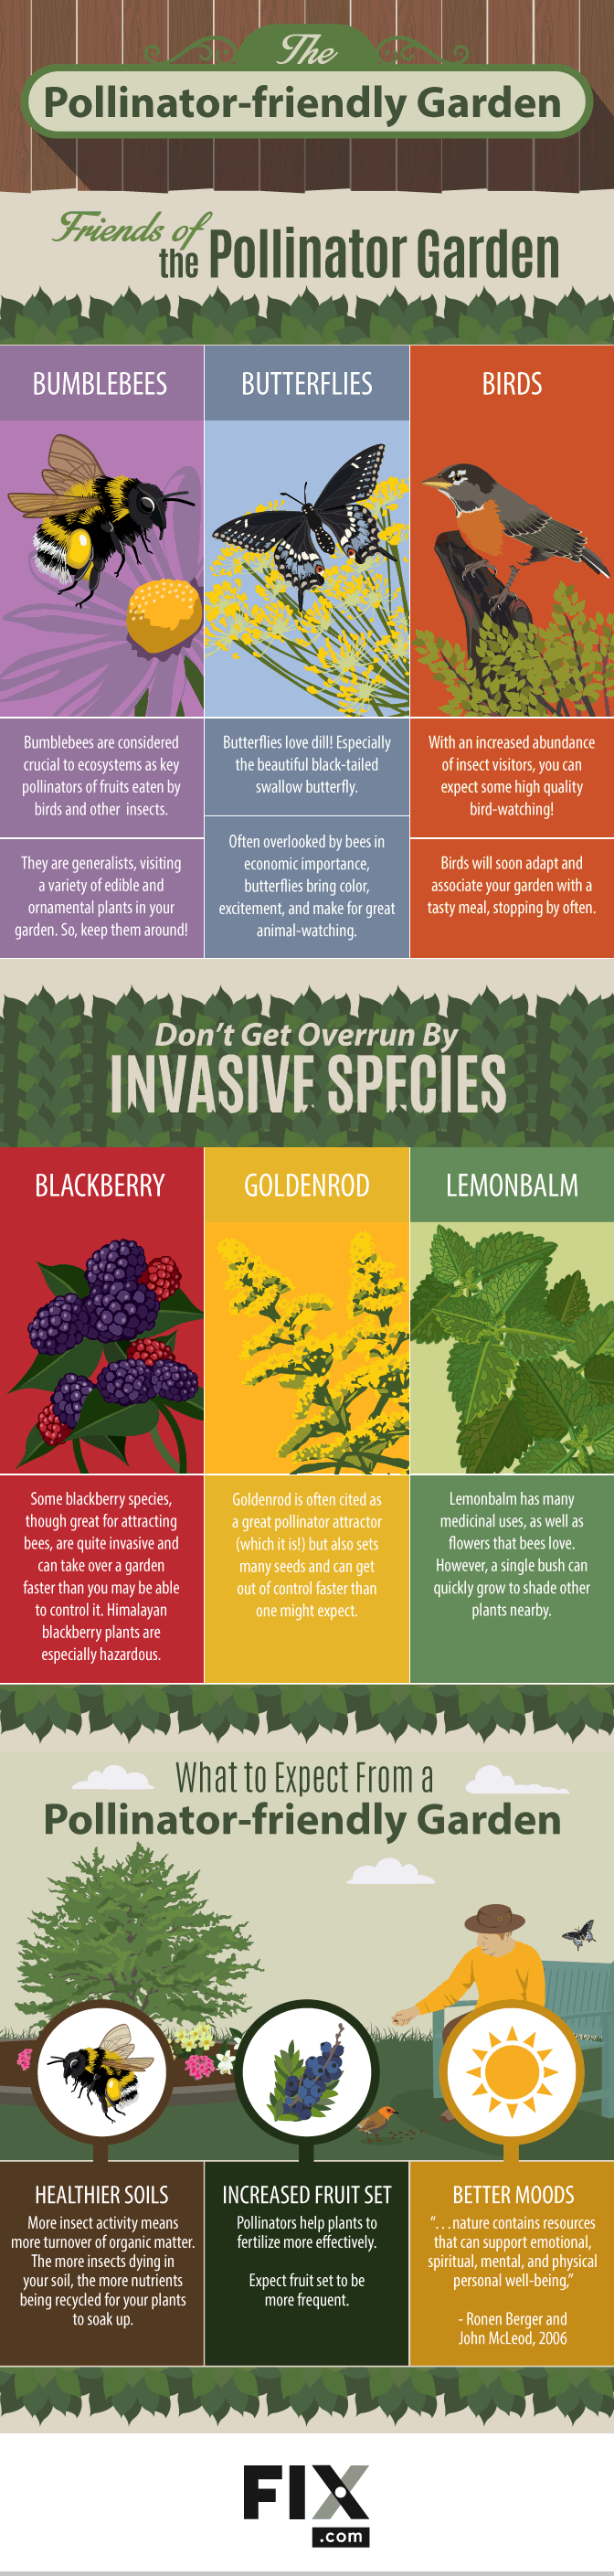 The Pollinator-Friendly Garden #Infographic